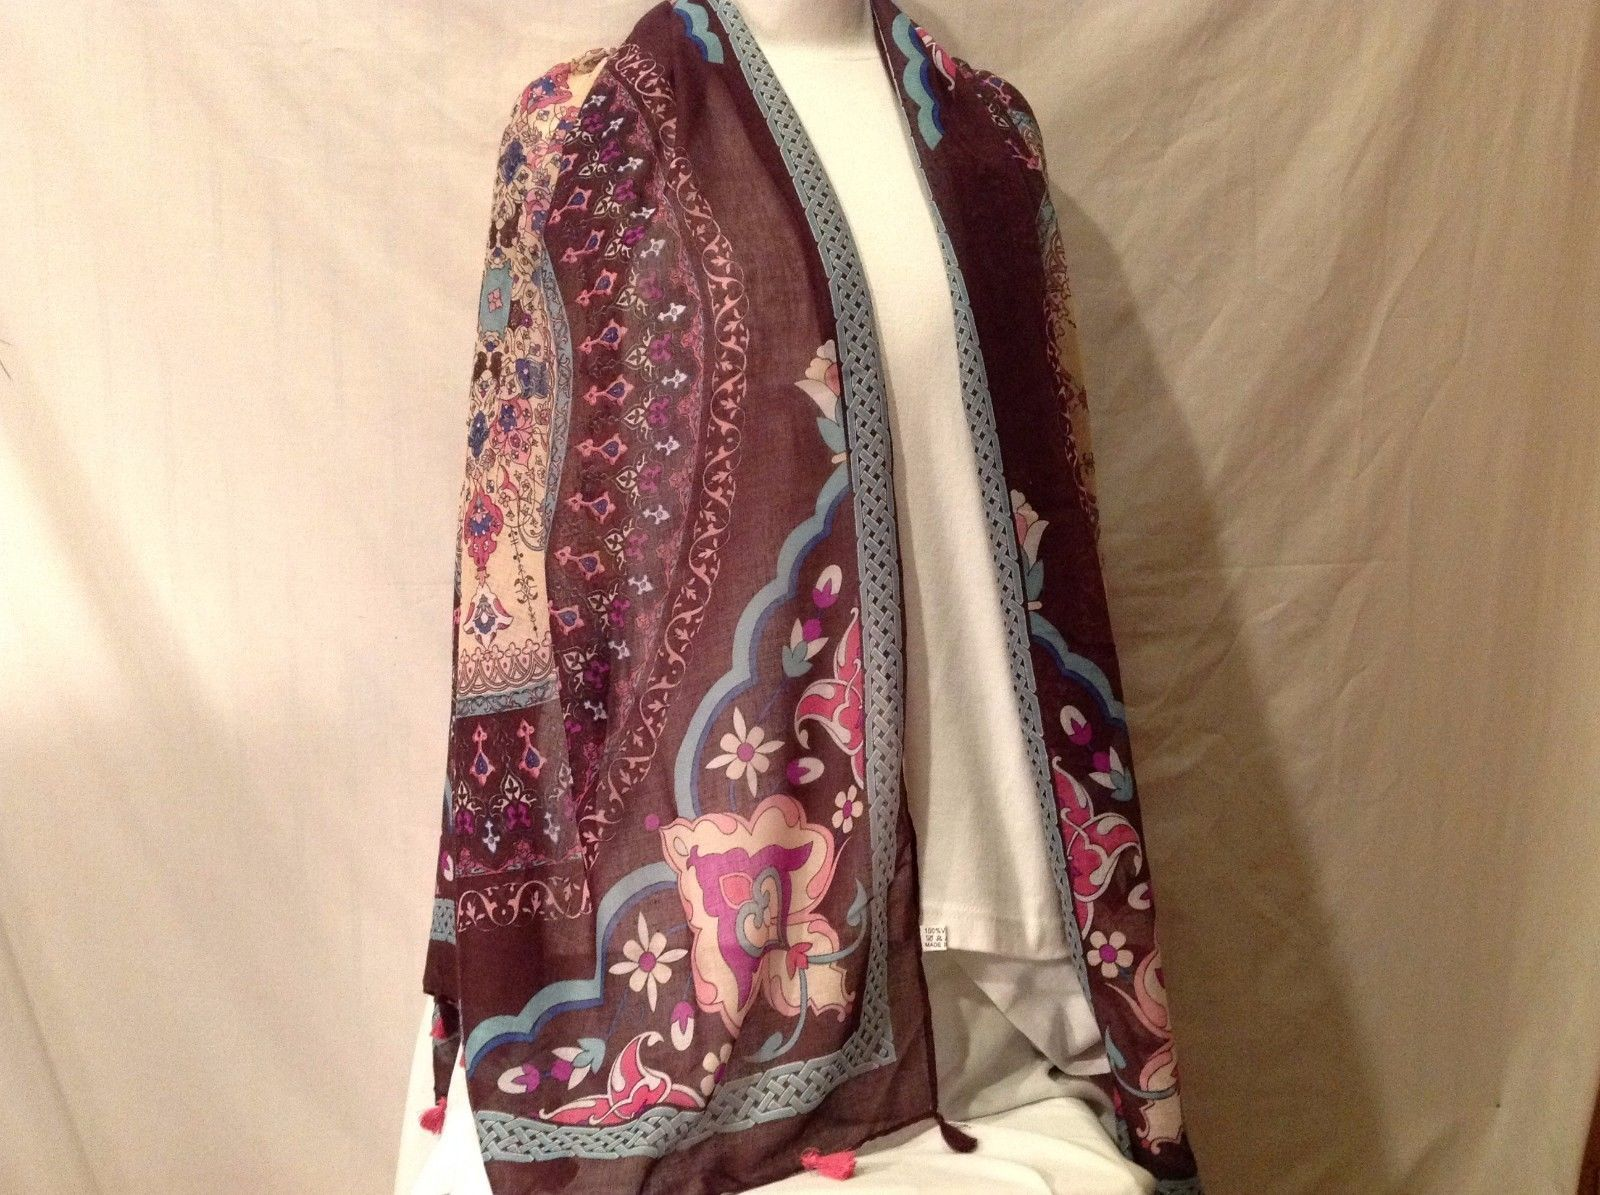 Primary image for Soft Multi-color Floral design large shawl scarf wine w pink aqua blue 72 x 36